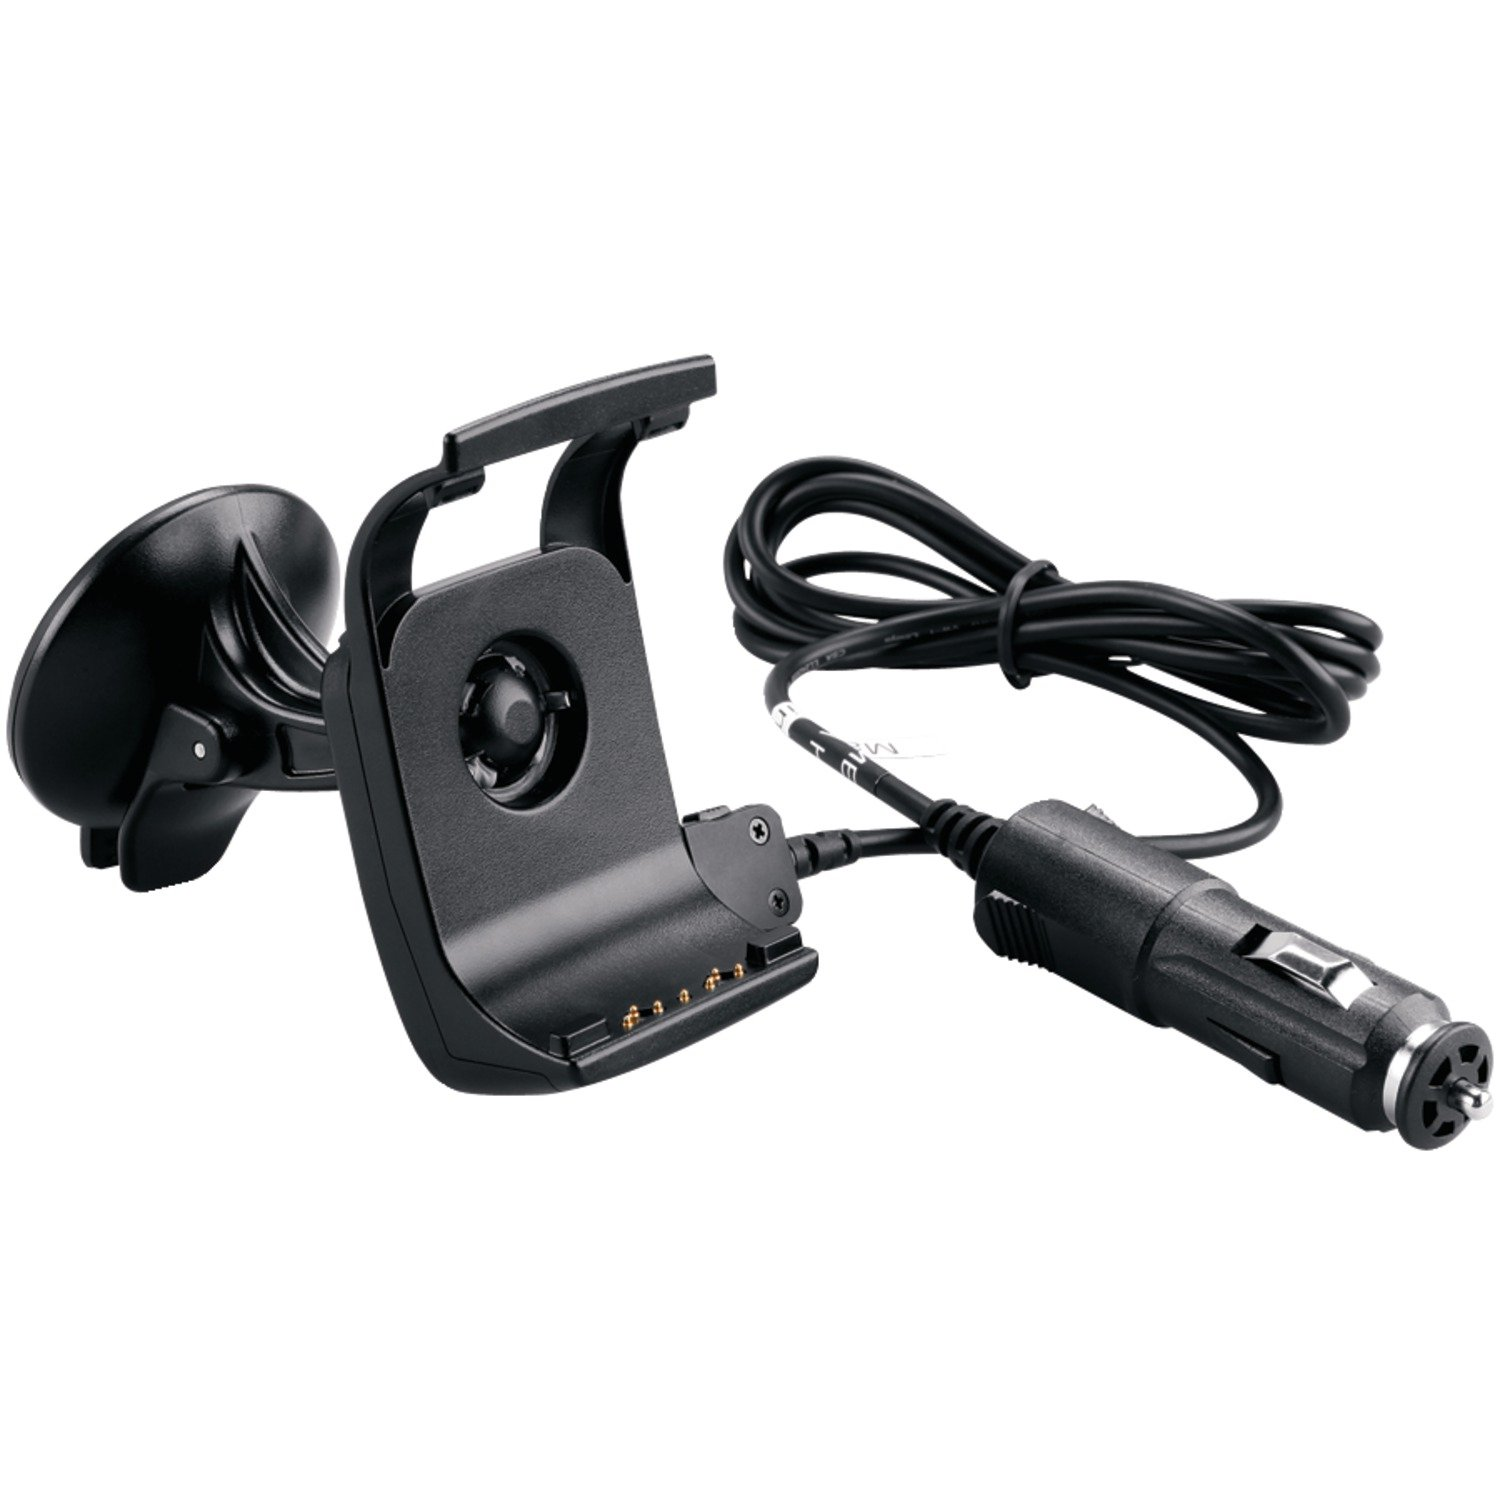 Garmin Auto Suction Cup Mount with Speaker by Garmin